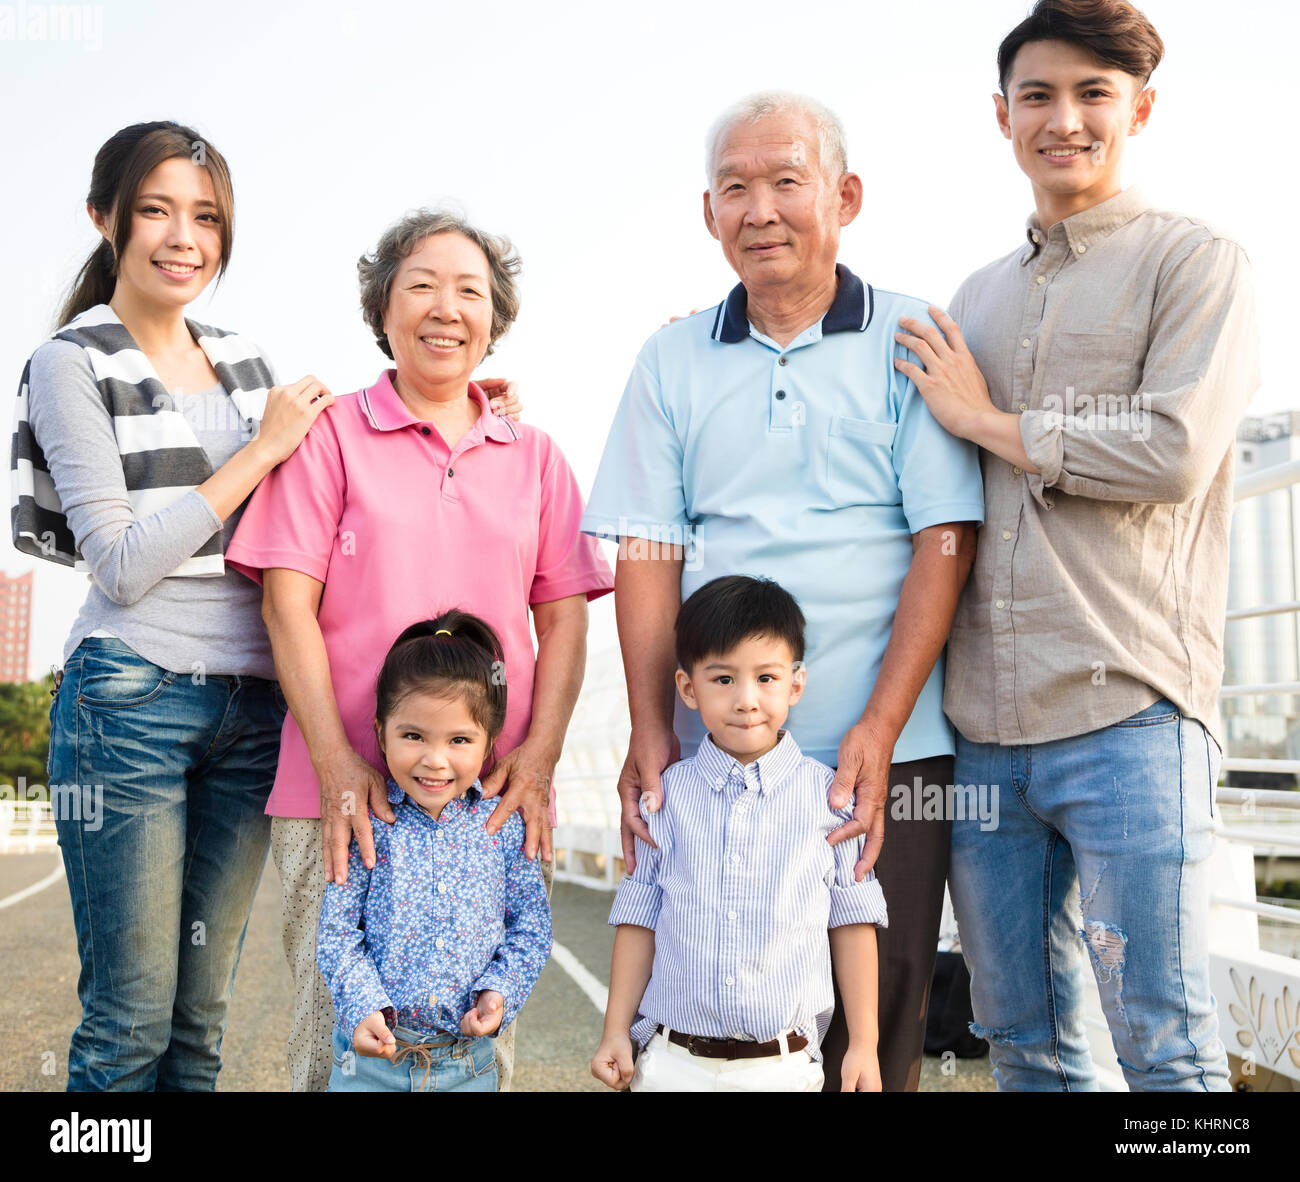 three generations family standing together outdoors - Stock Image